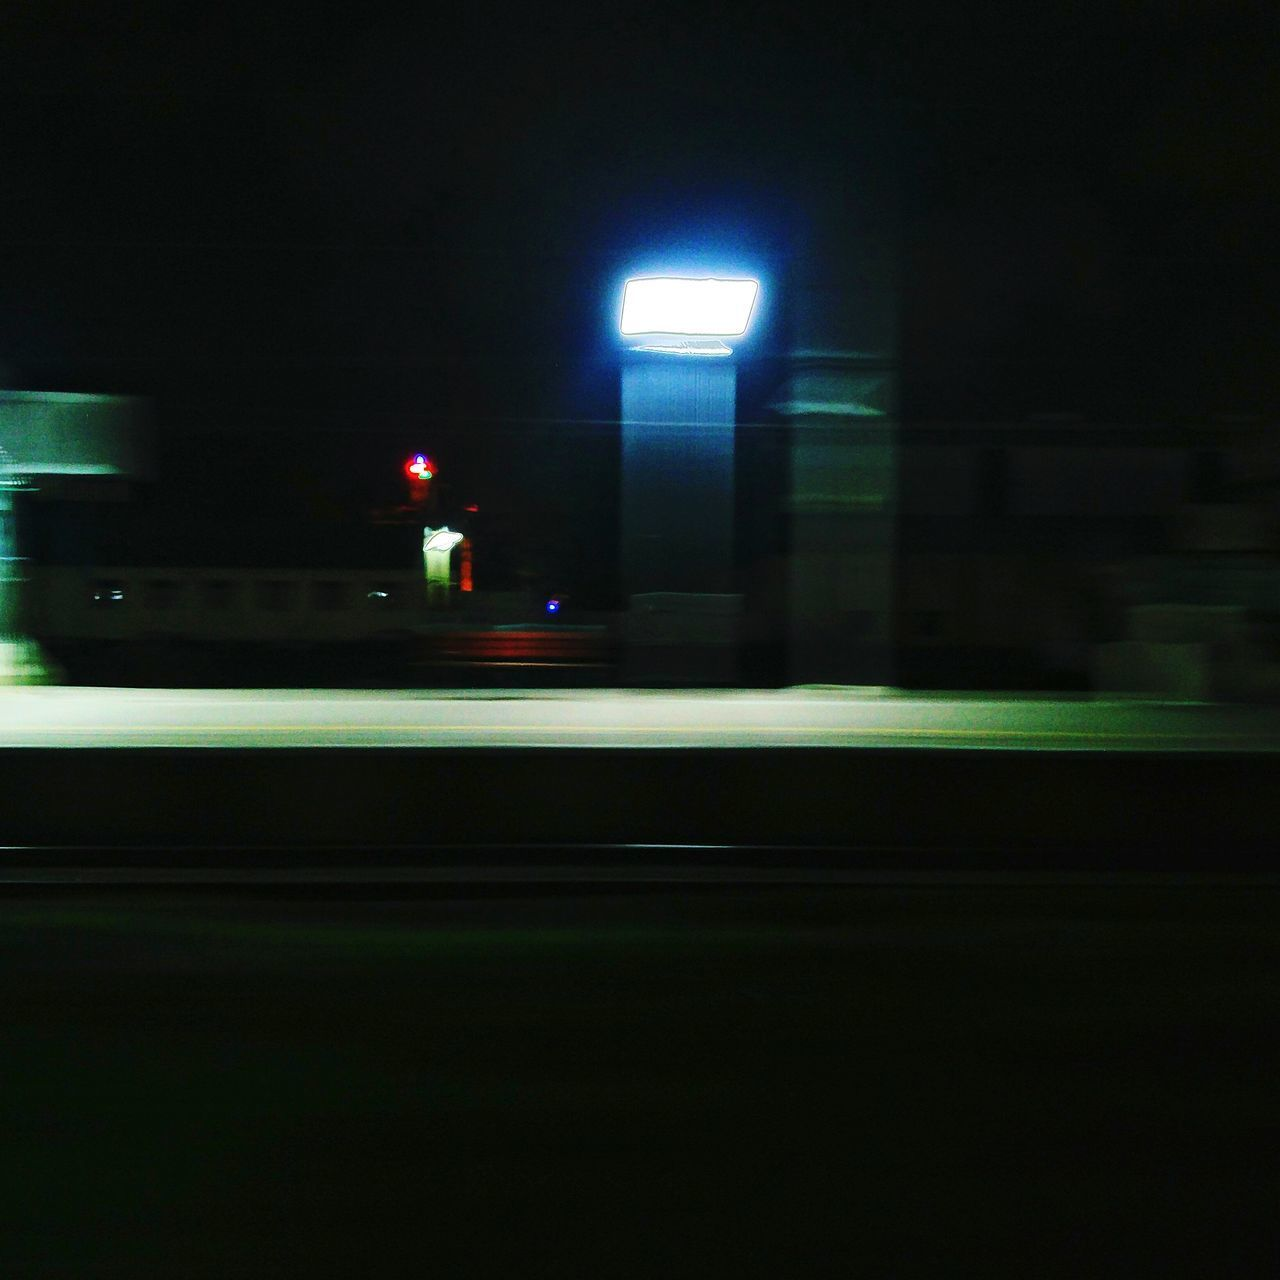 Night Illuminated No People Oneplusphotography Edited Oneplus2 India EyeEm Gallery Eyeemphotography Snapseed Outdoors Train Scene Trainstation Rail Transportation Railroad Station Platform